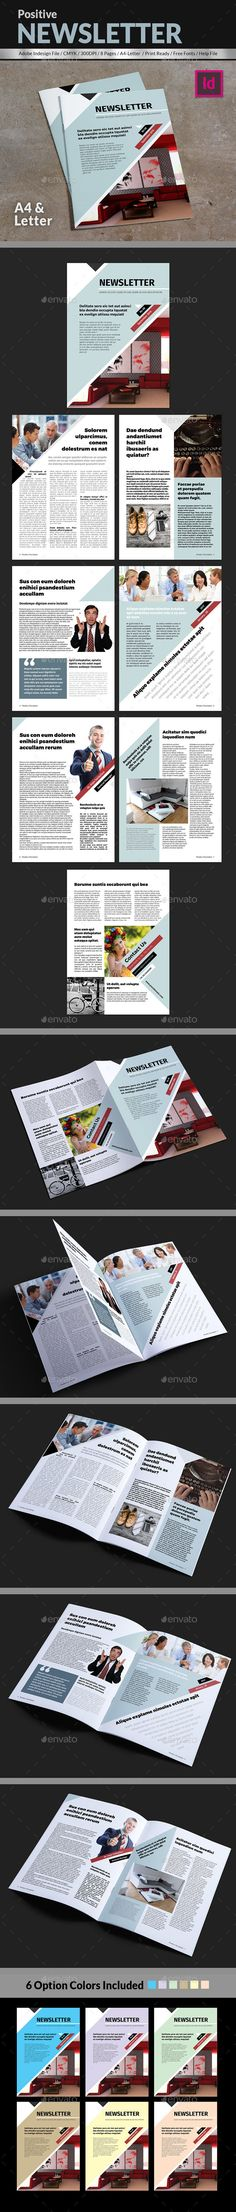 Company Newsletter Template  Newsletter Templates Marketing